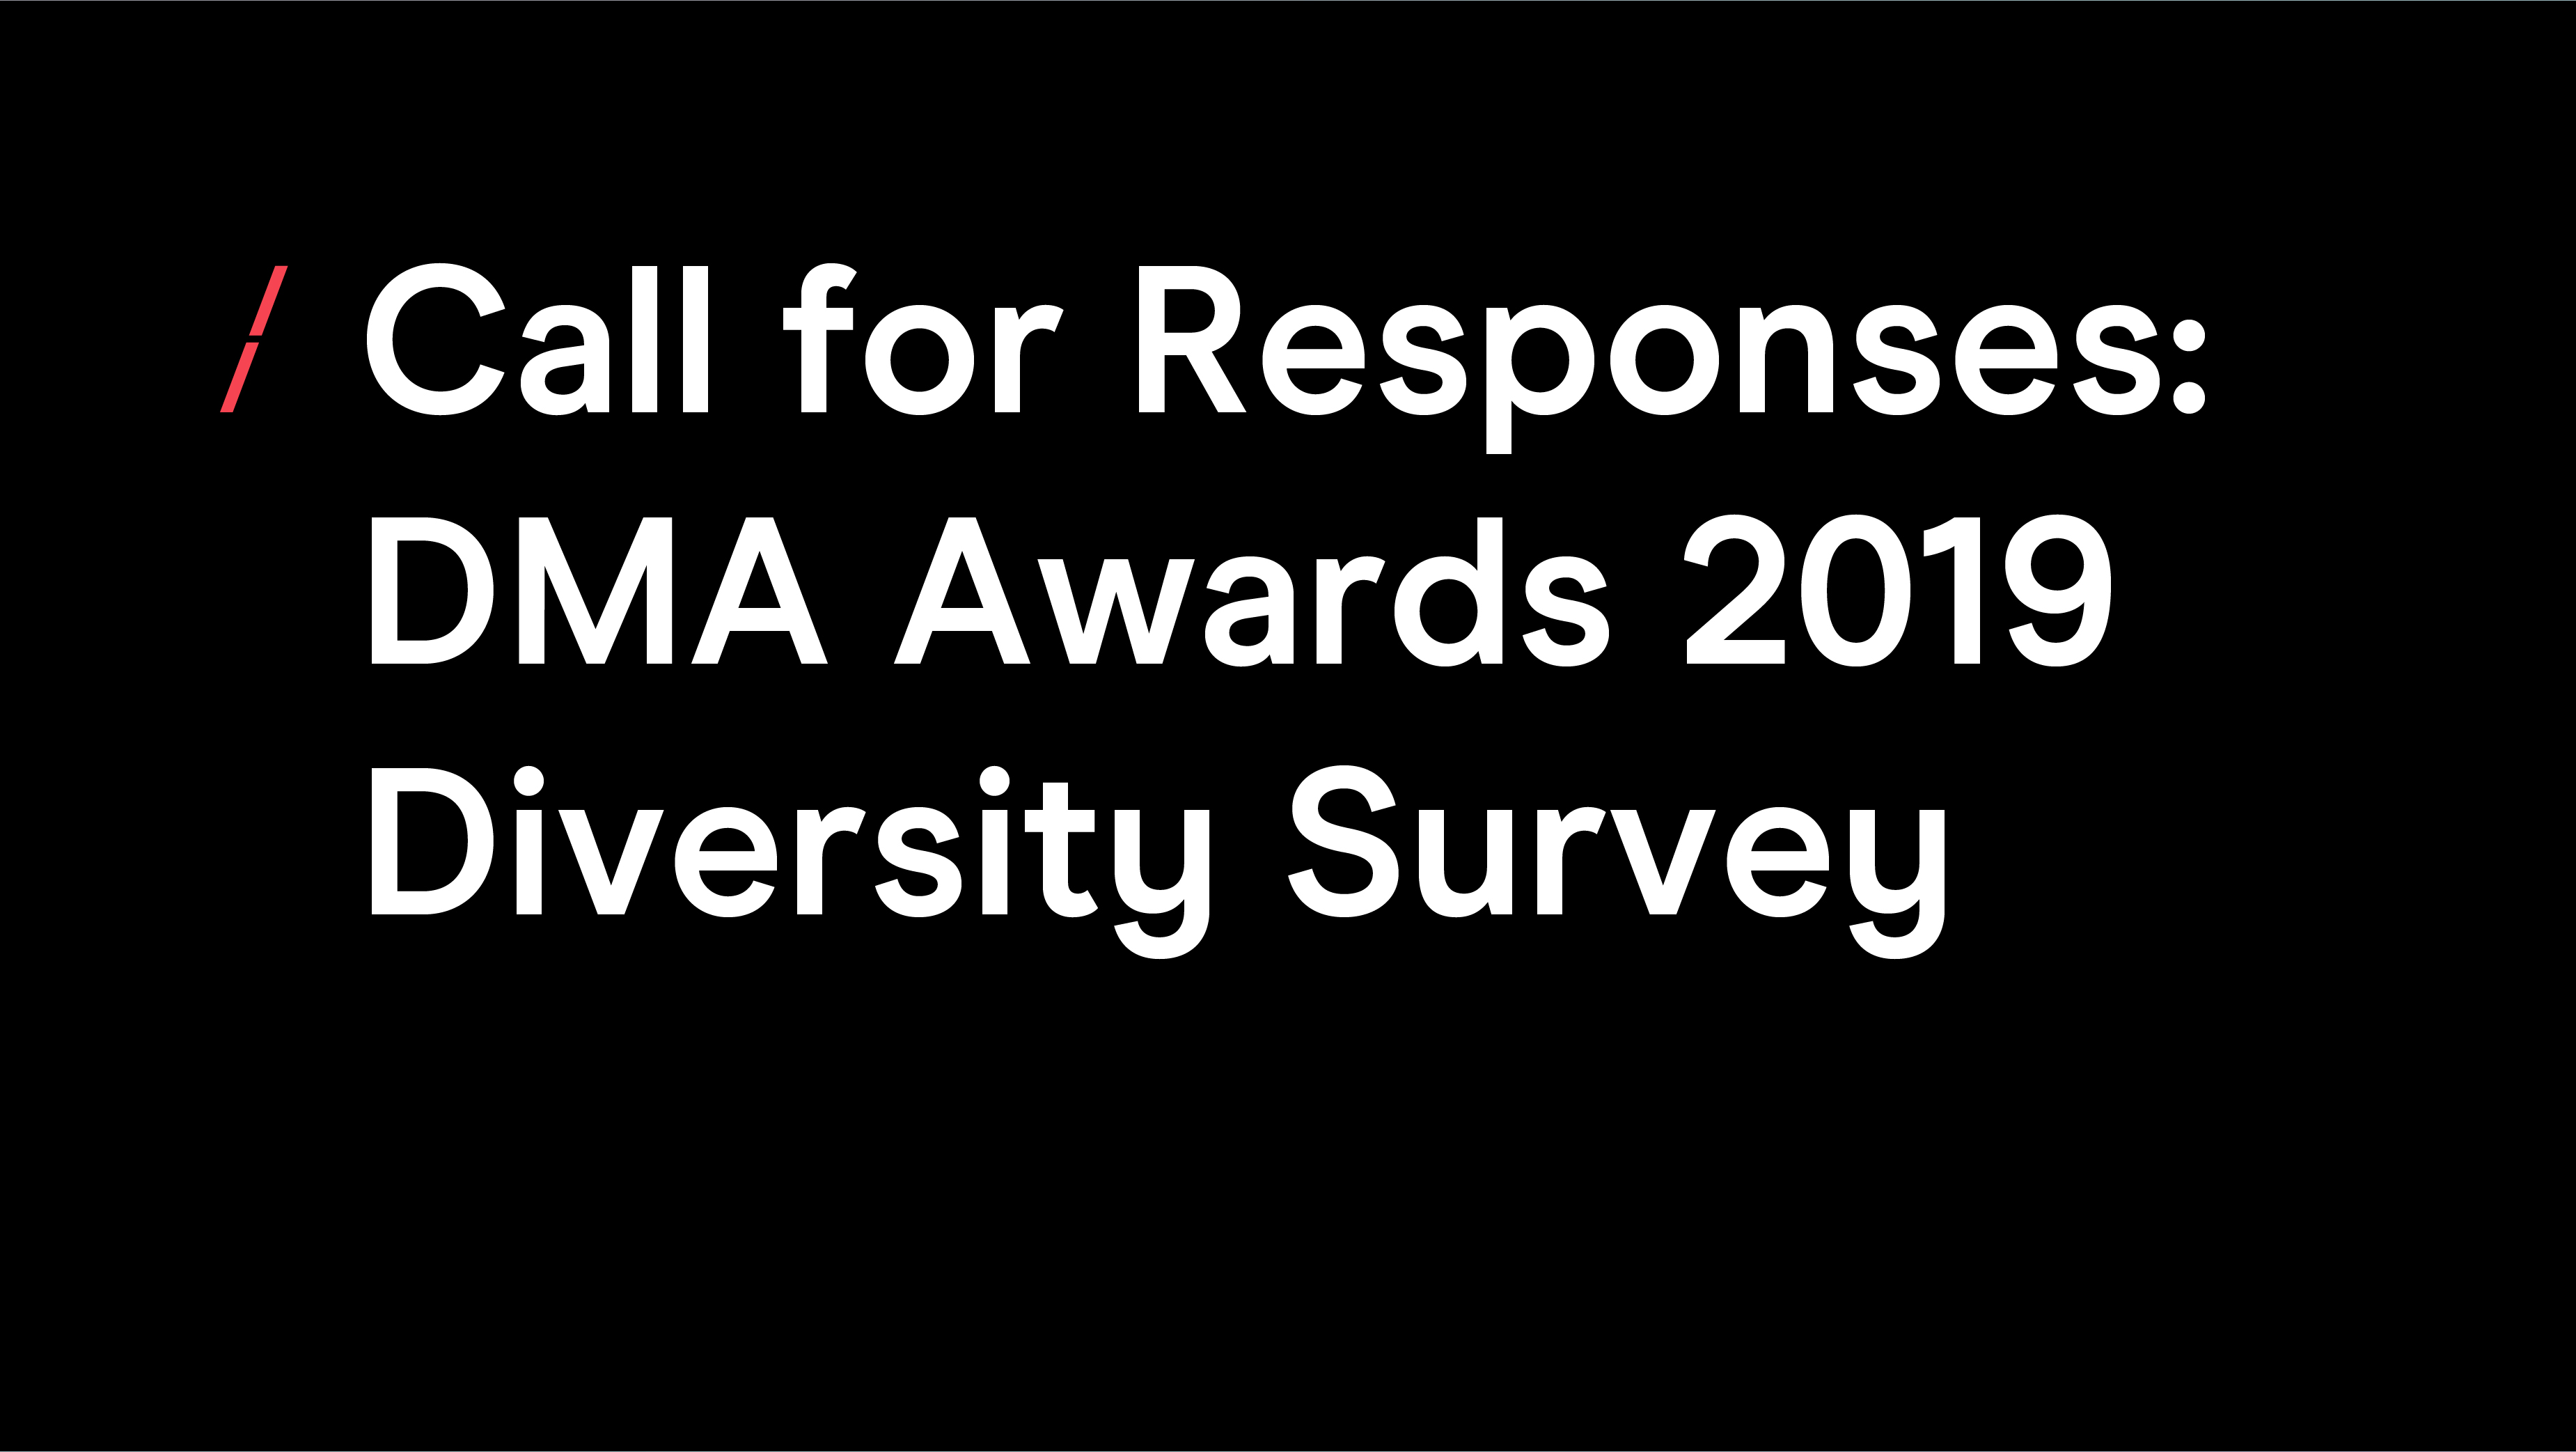 DMA Awards 2019 Diversity Survey_General articles.jpg